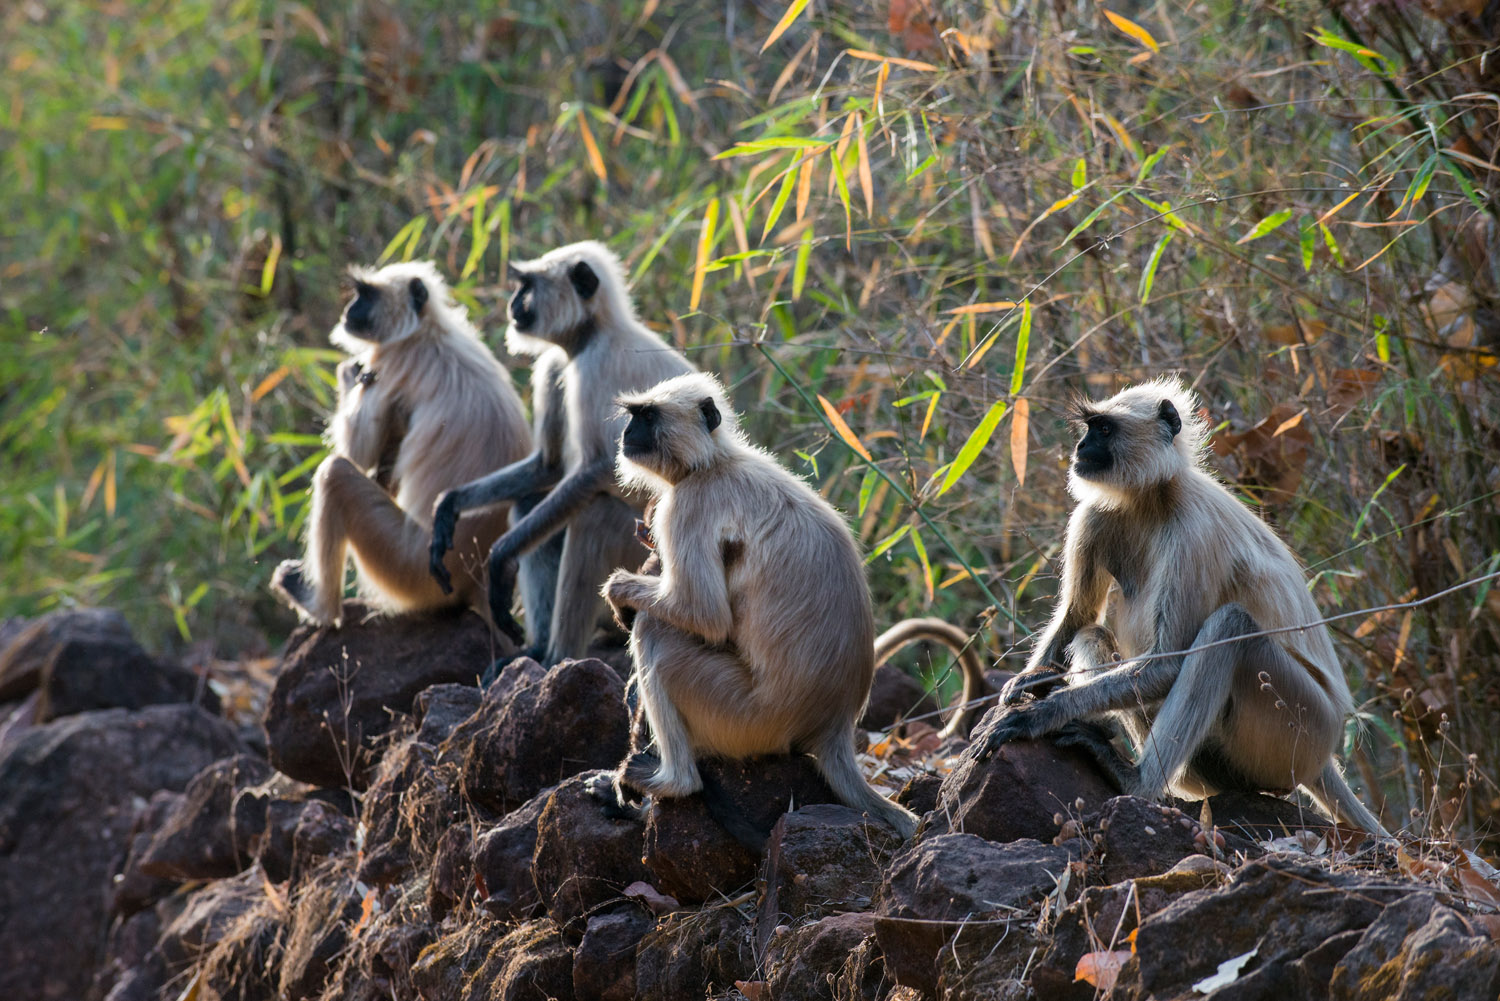 Hanuman langur monkeys sunbathing on stone wall at dawn, Bandhavgarh National Park, Madhya Pradesh, India